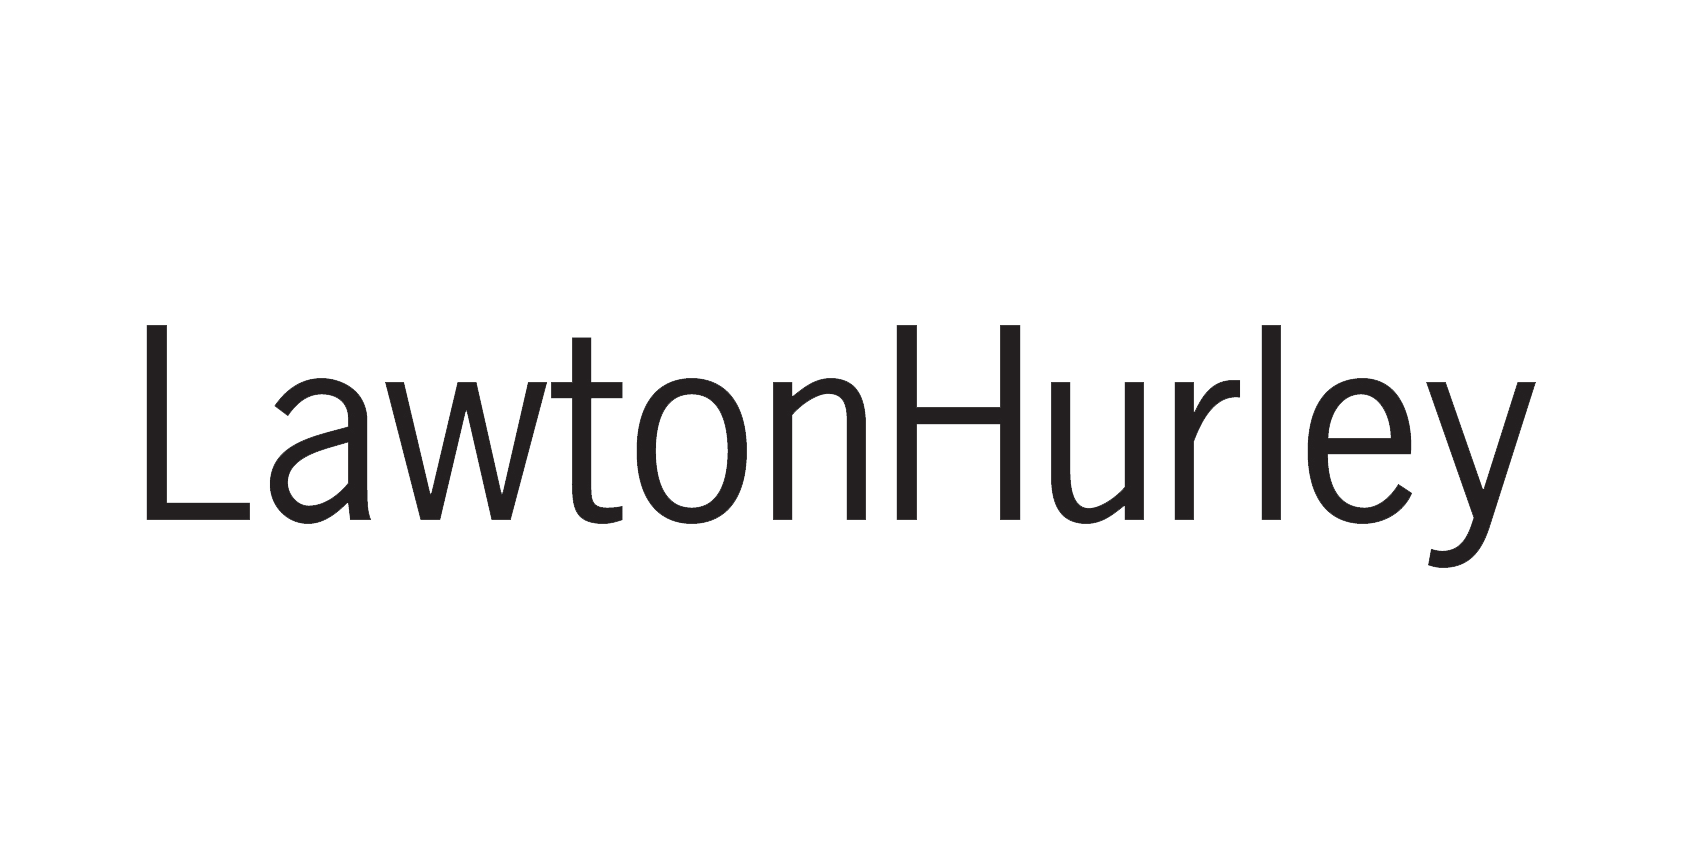 Established in 1997, Lawton Hurley is a design-based architectural practice working across all aspects of residential, commercial and retail projects. With a high level of expertise and service, they provide innovative solutions tailored to each individual venture.